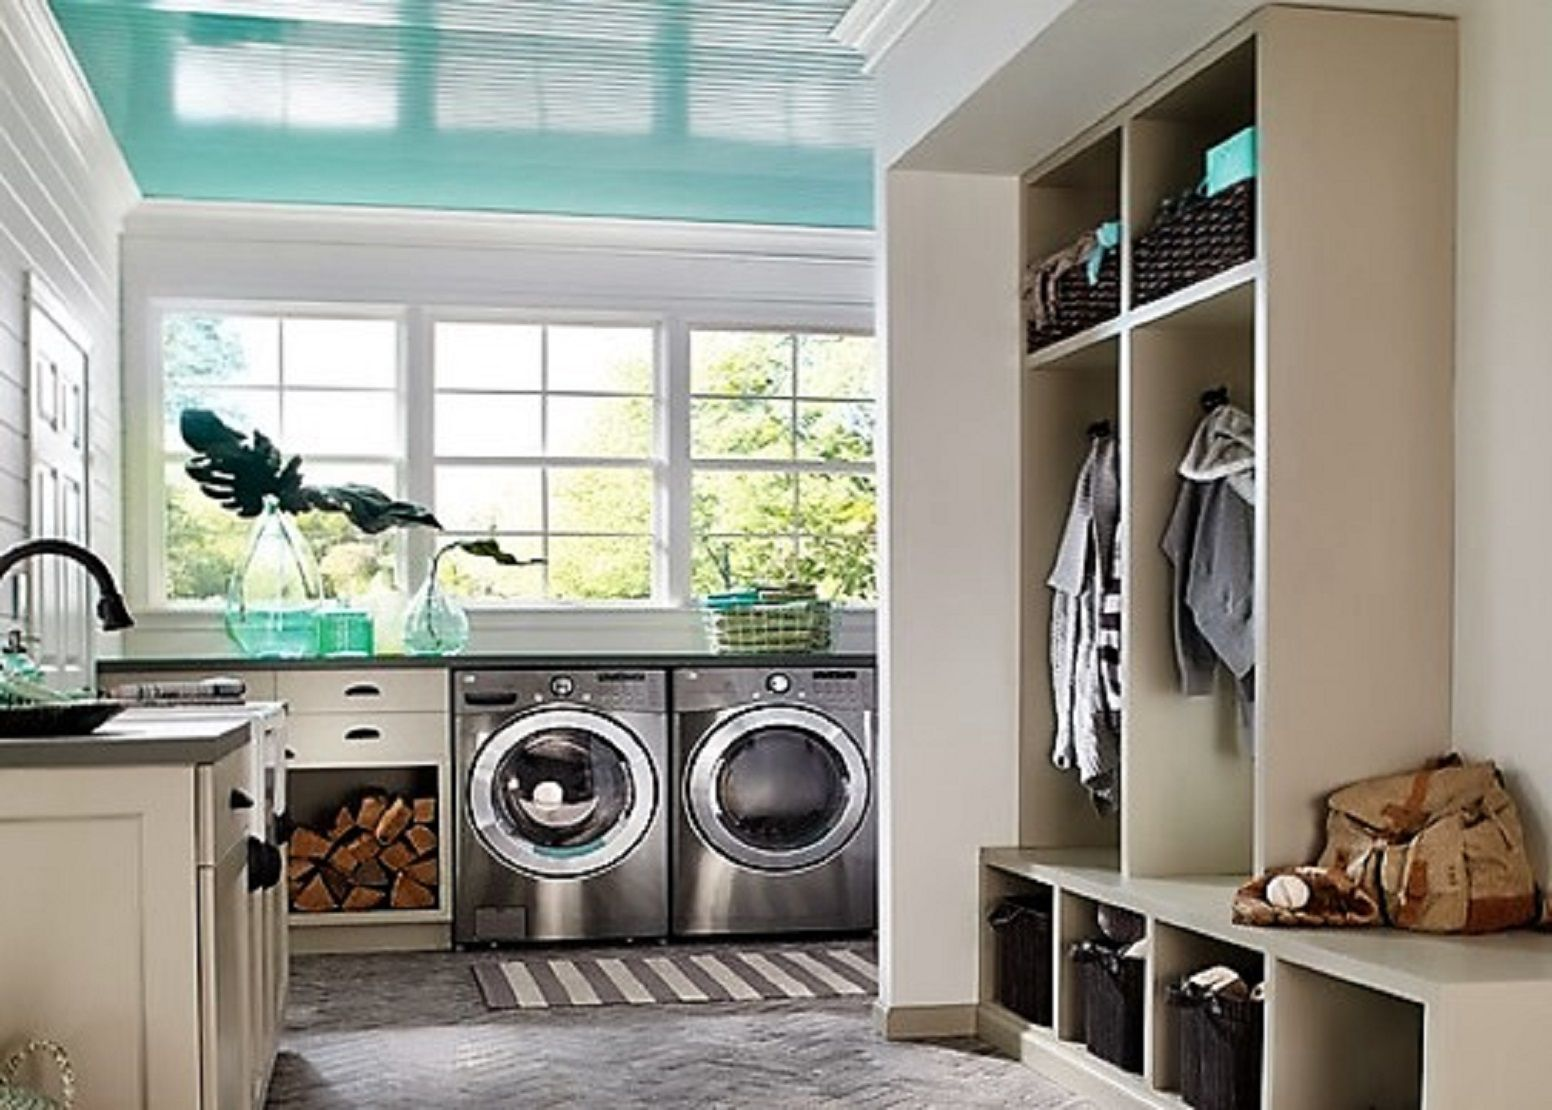 Laundry Room Photos How To Stage Your Laundry Room To Sell Your Home